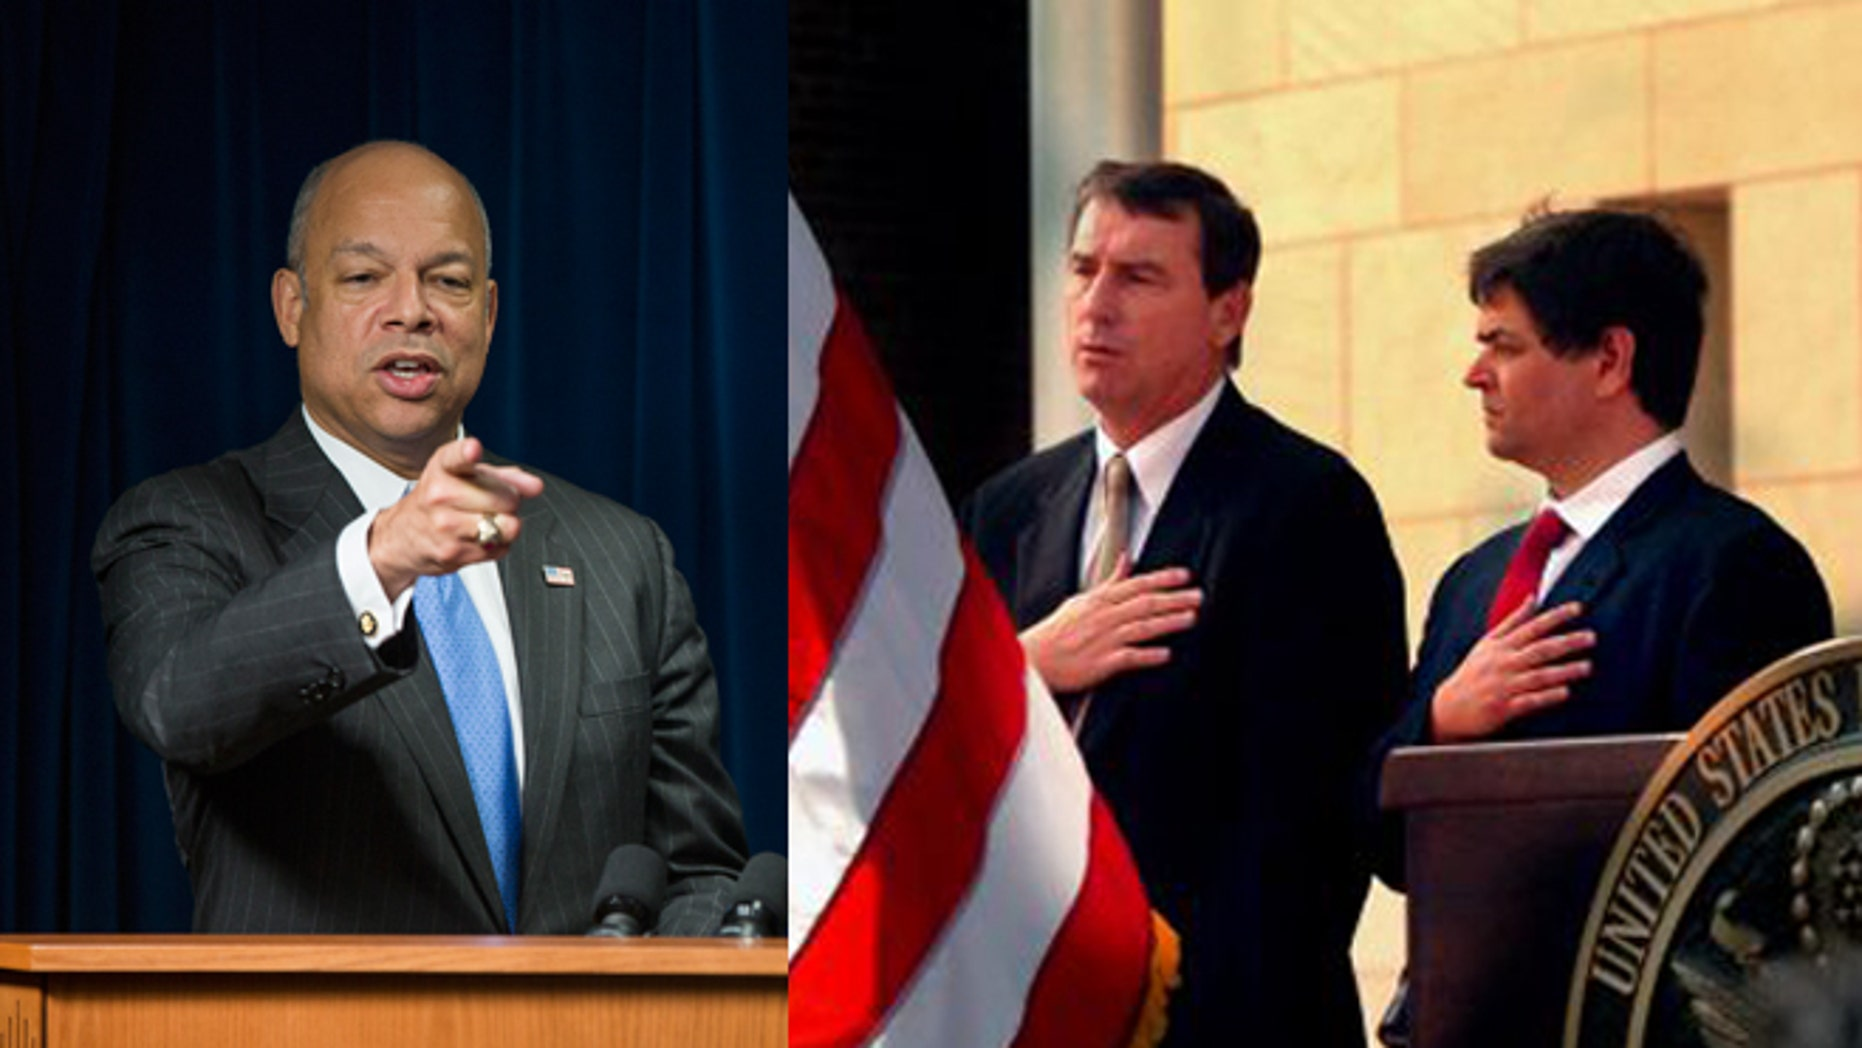 Left: Homeland Security Secretary Jeh Johnson (AP Photo/ Evan Vucci). Right: District Court Judge Anthony Hanen, at left. (AP Photo/The Brownsville Herald, Brad Doherty, File)